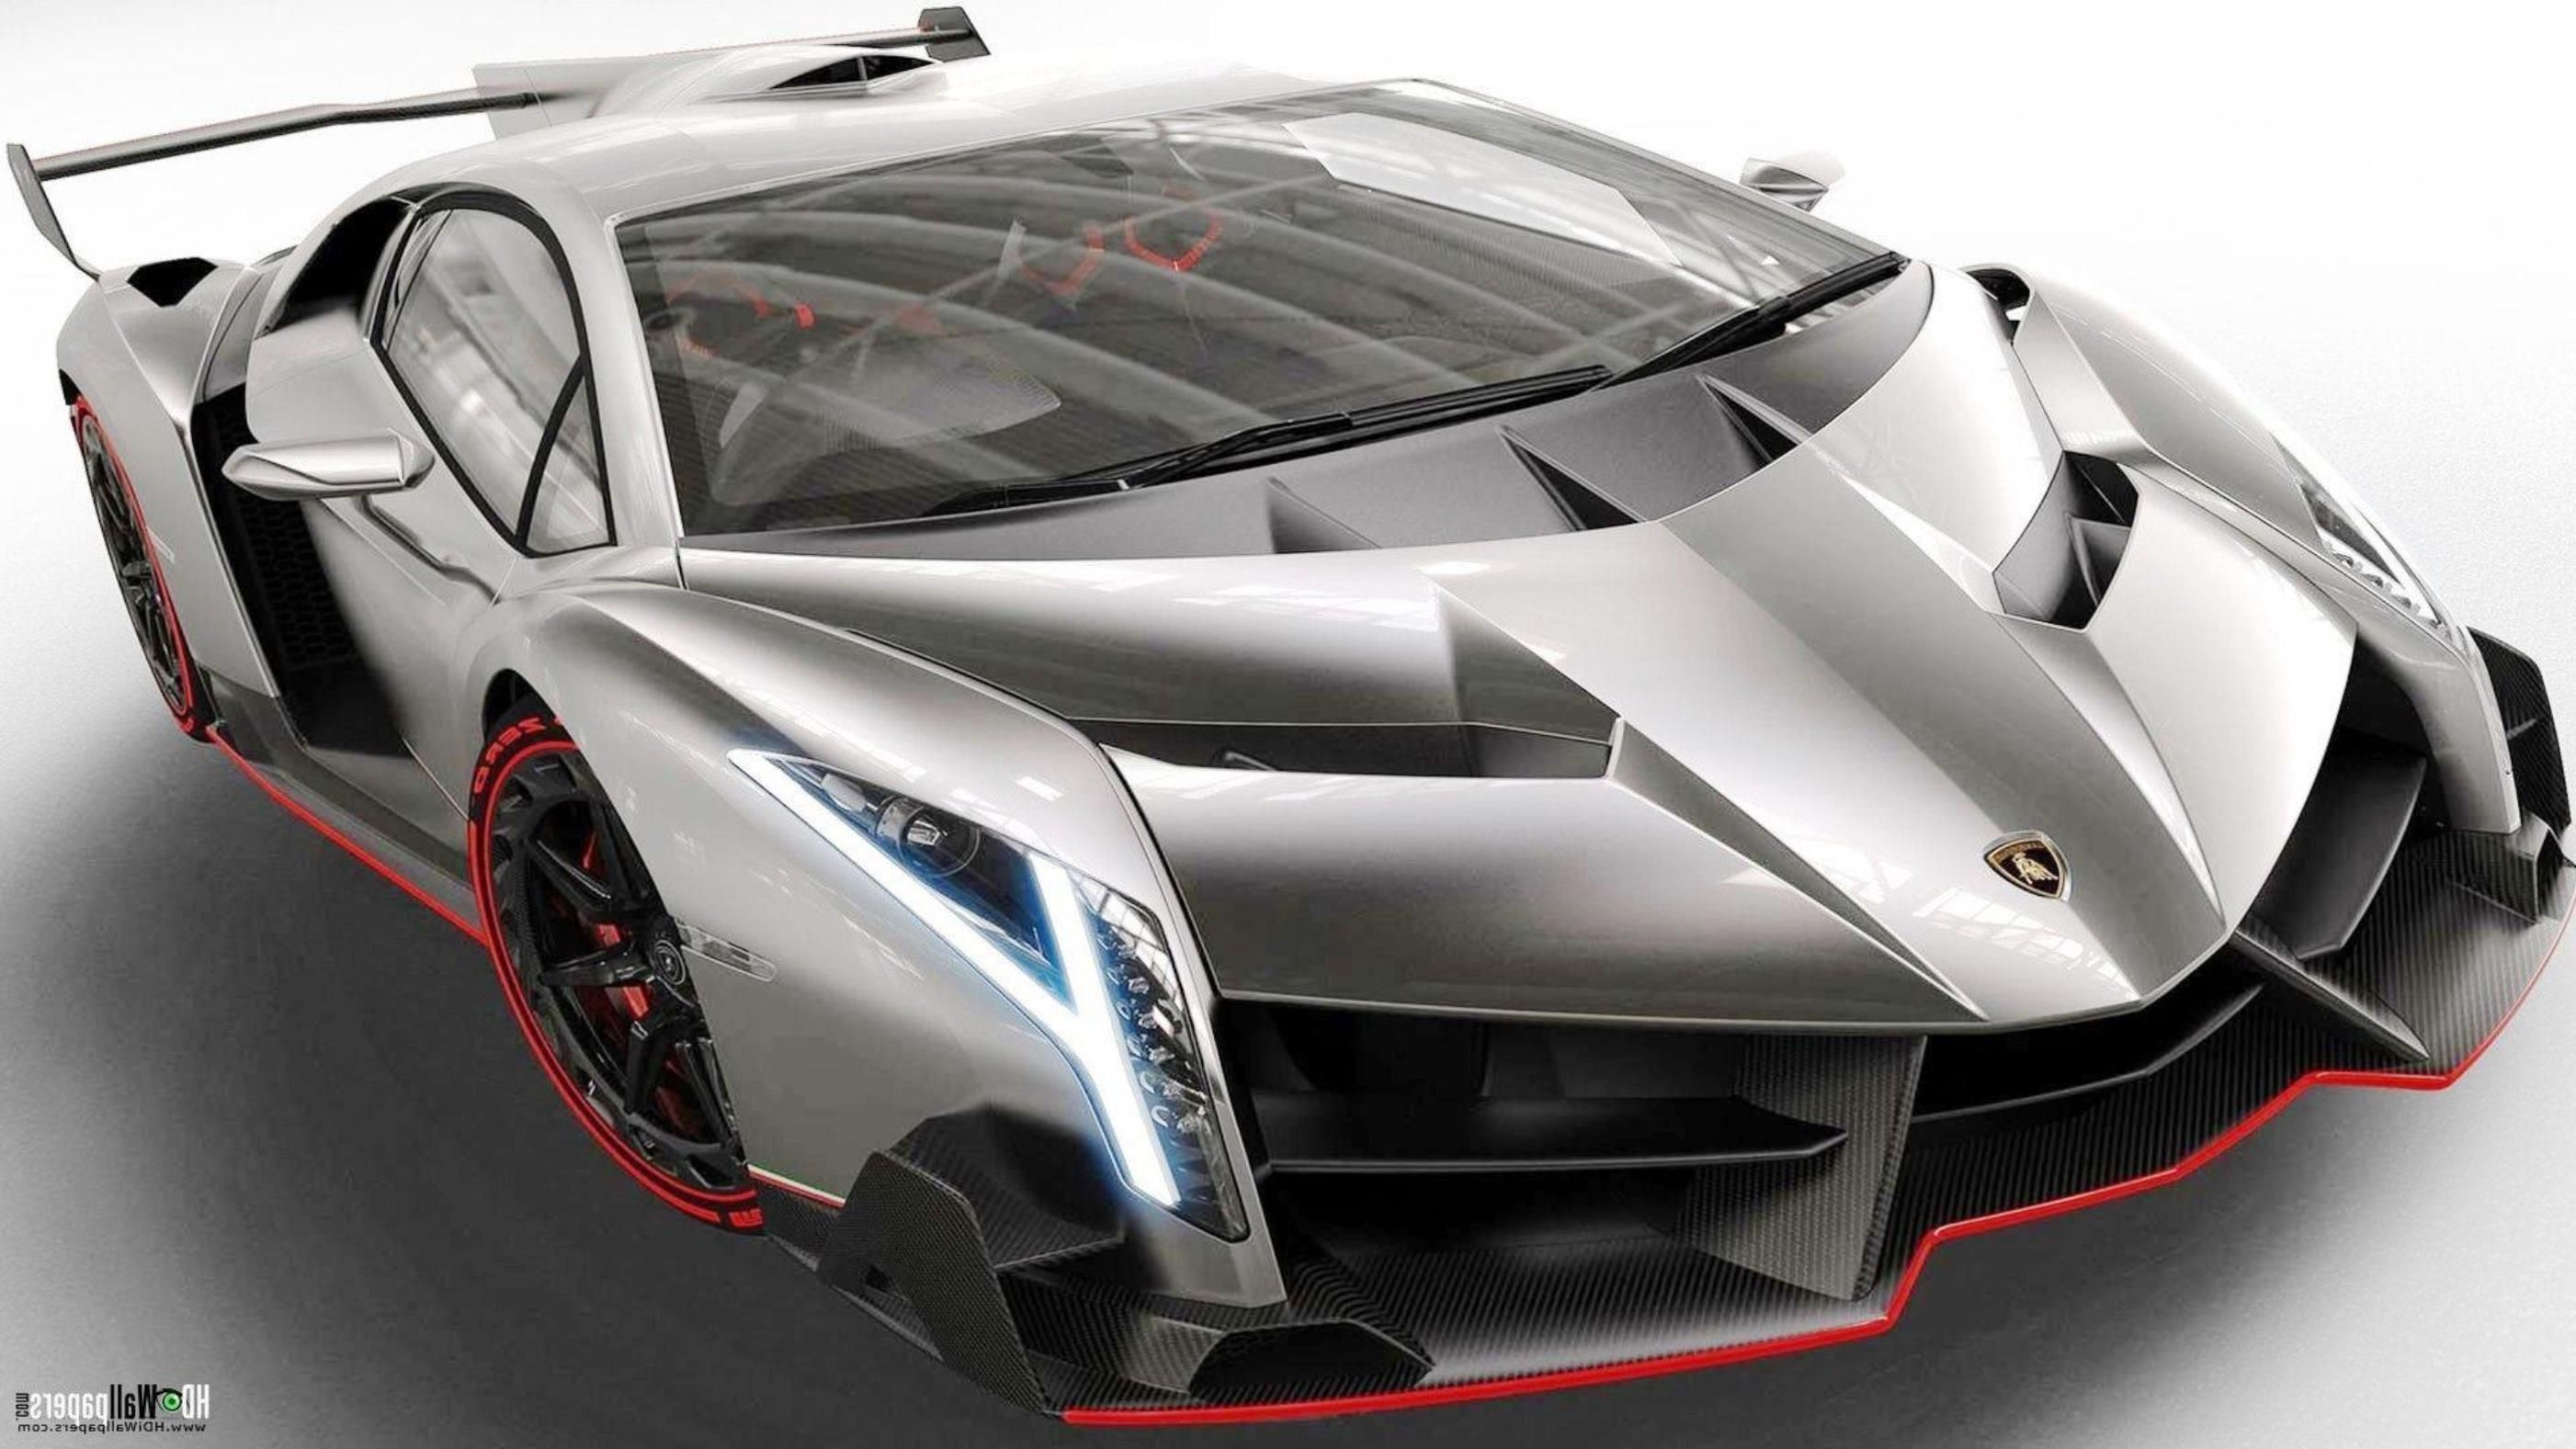 Fastest And Coolest Cars In The World 2015 Wallpaper Cararea Cool Sports Cars Sports Car Lamborghini Veneno